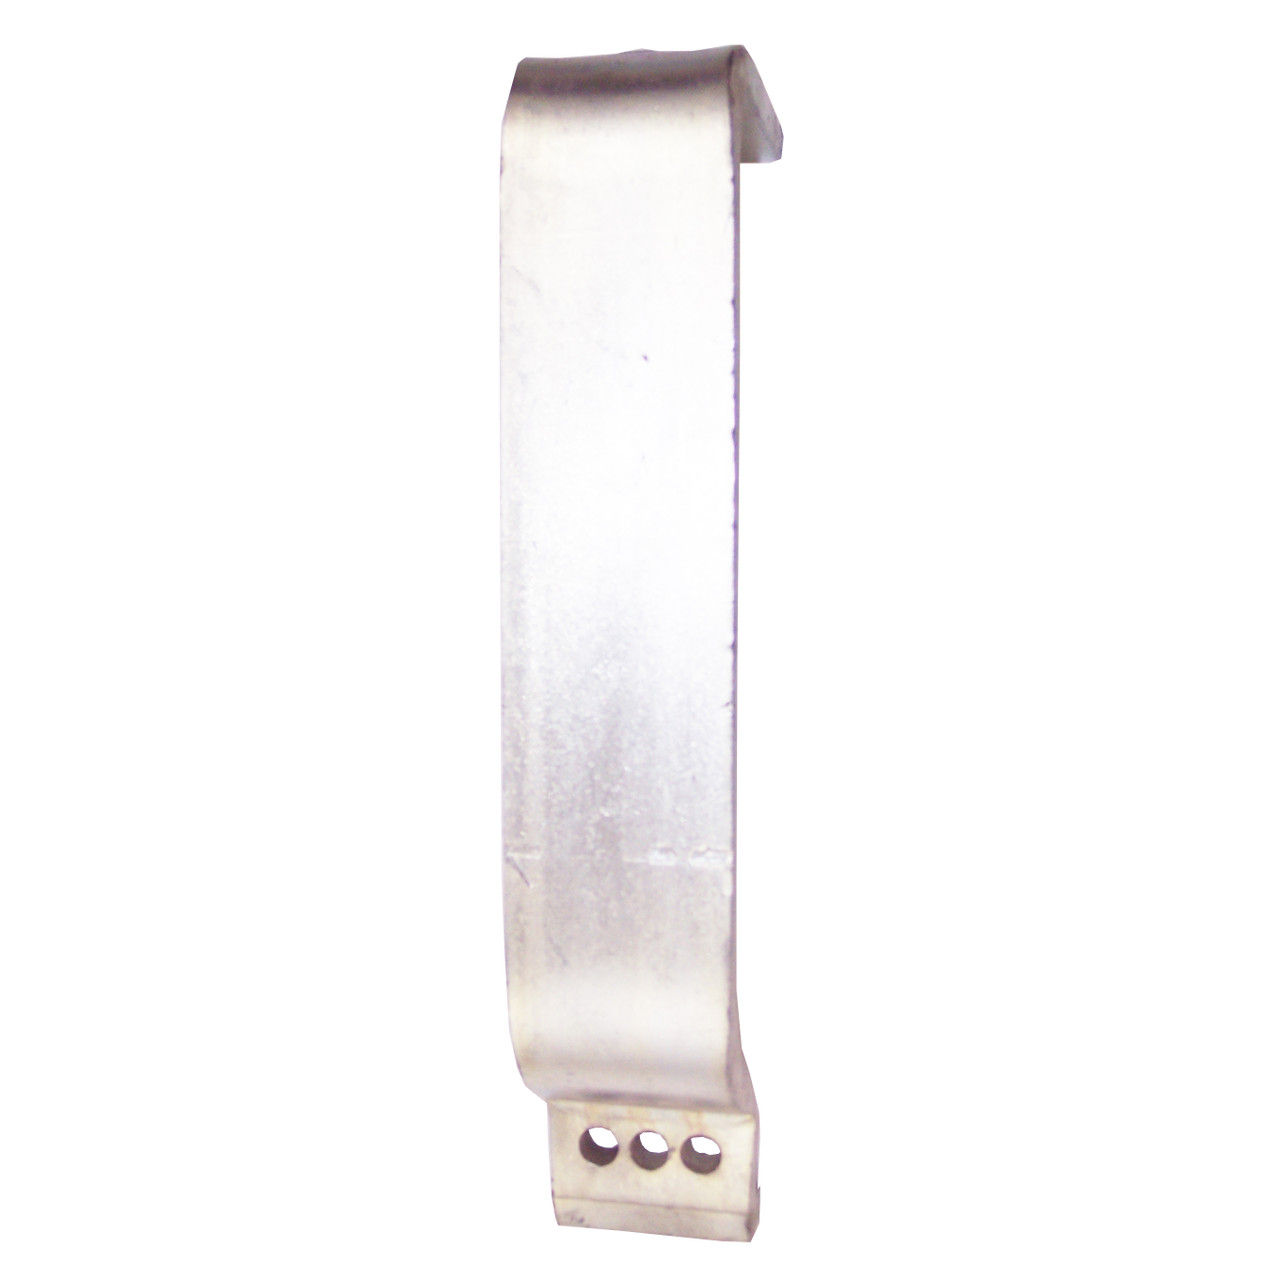 "12"" Hanger Bracket - One Top Hole - ""Zinc Plated"""